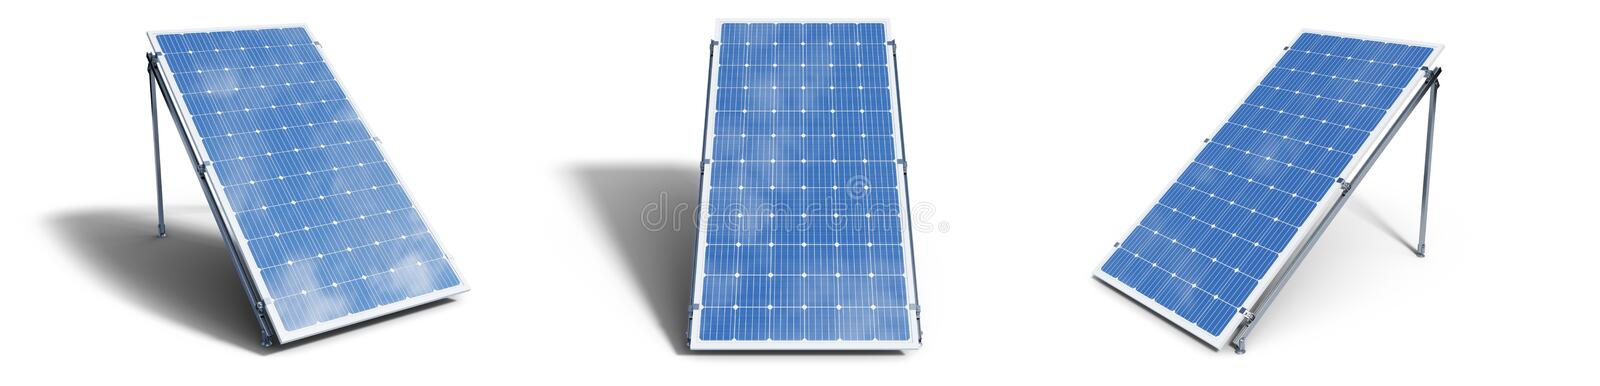 3D illustration solar panels isolated on white background. Set solar panels with reflection beautiful blue sky. Concept. Of renewable energy. Ecological, clean royalty free stock image